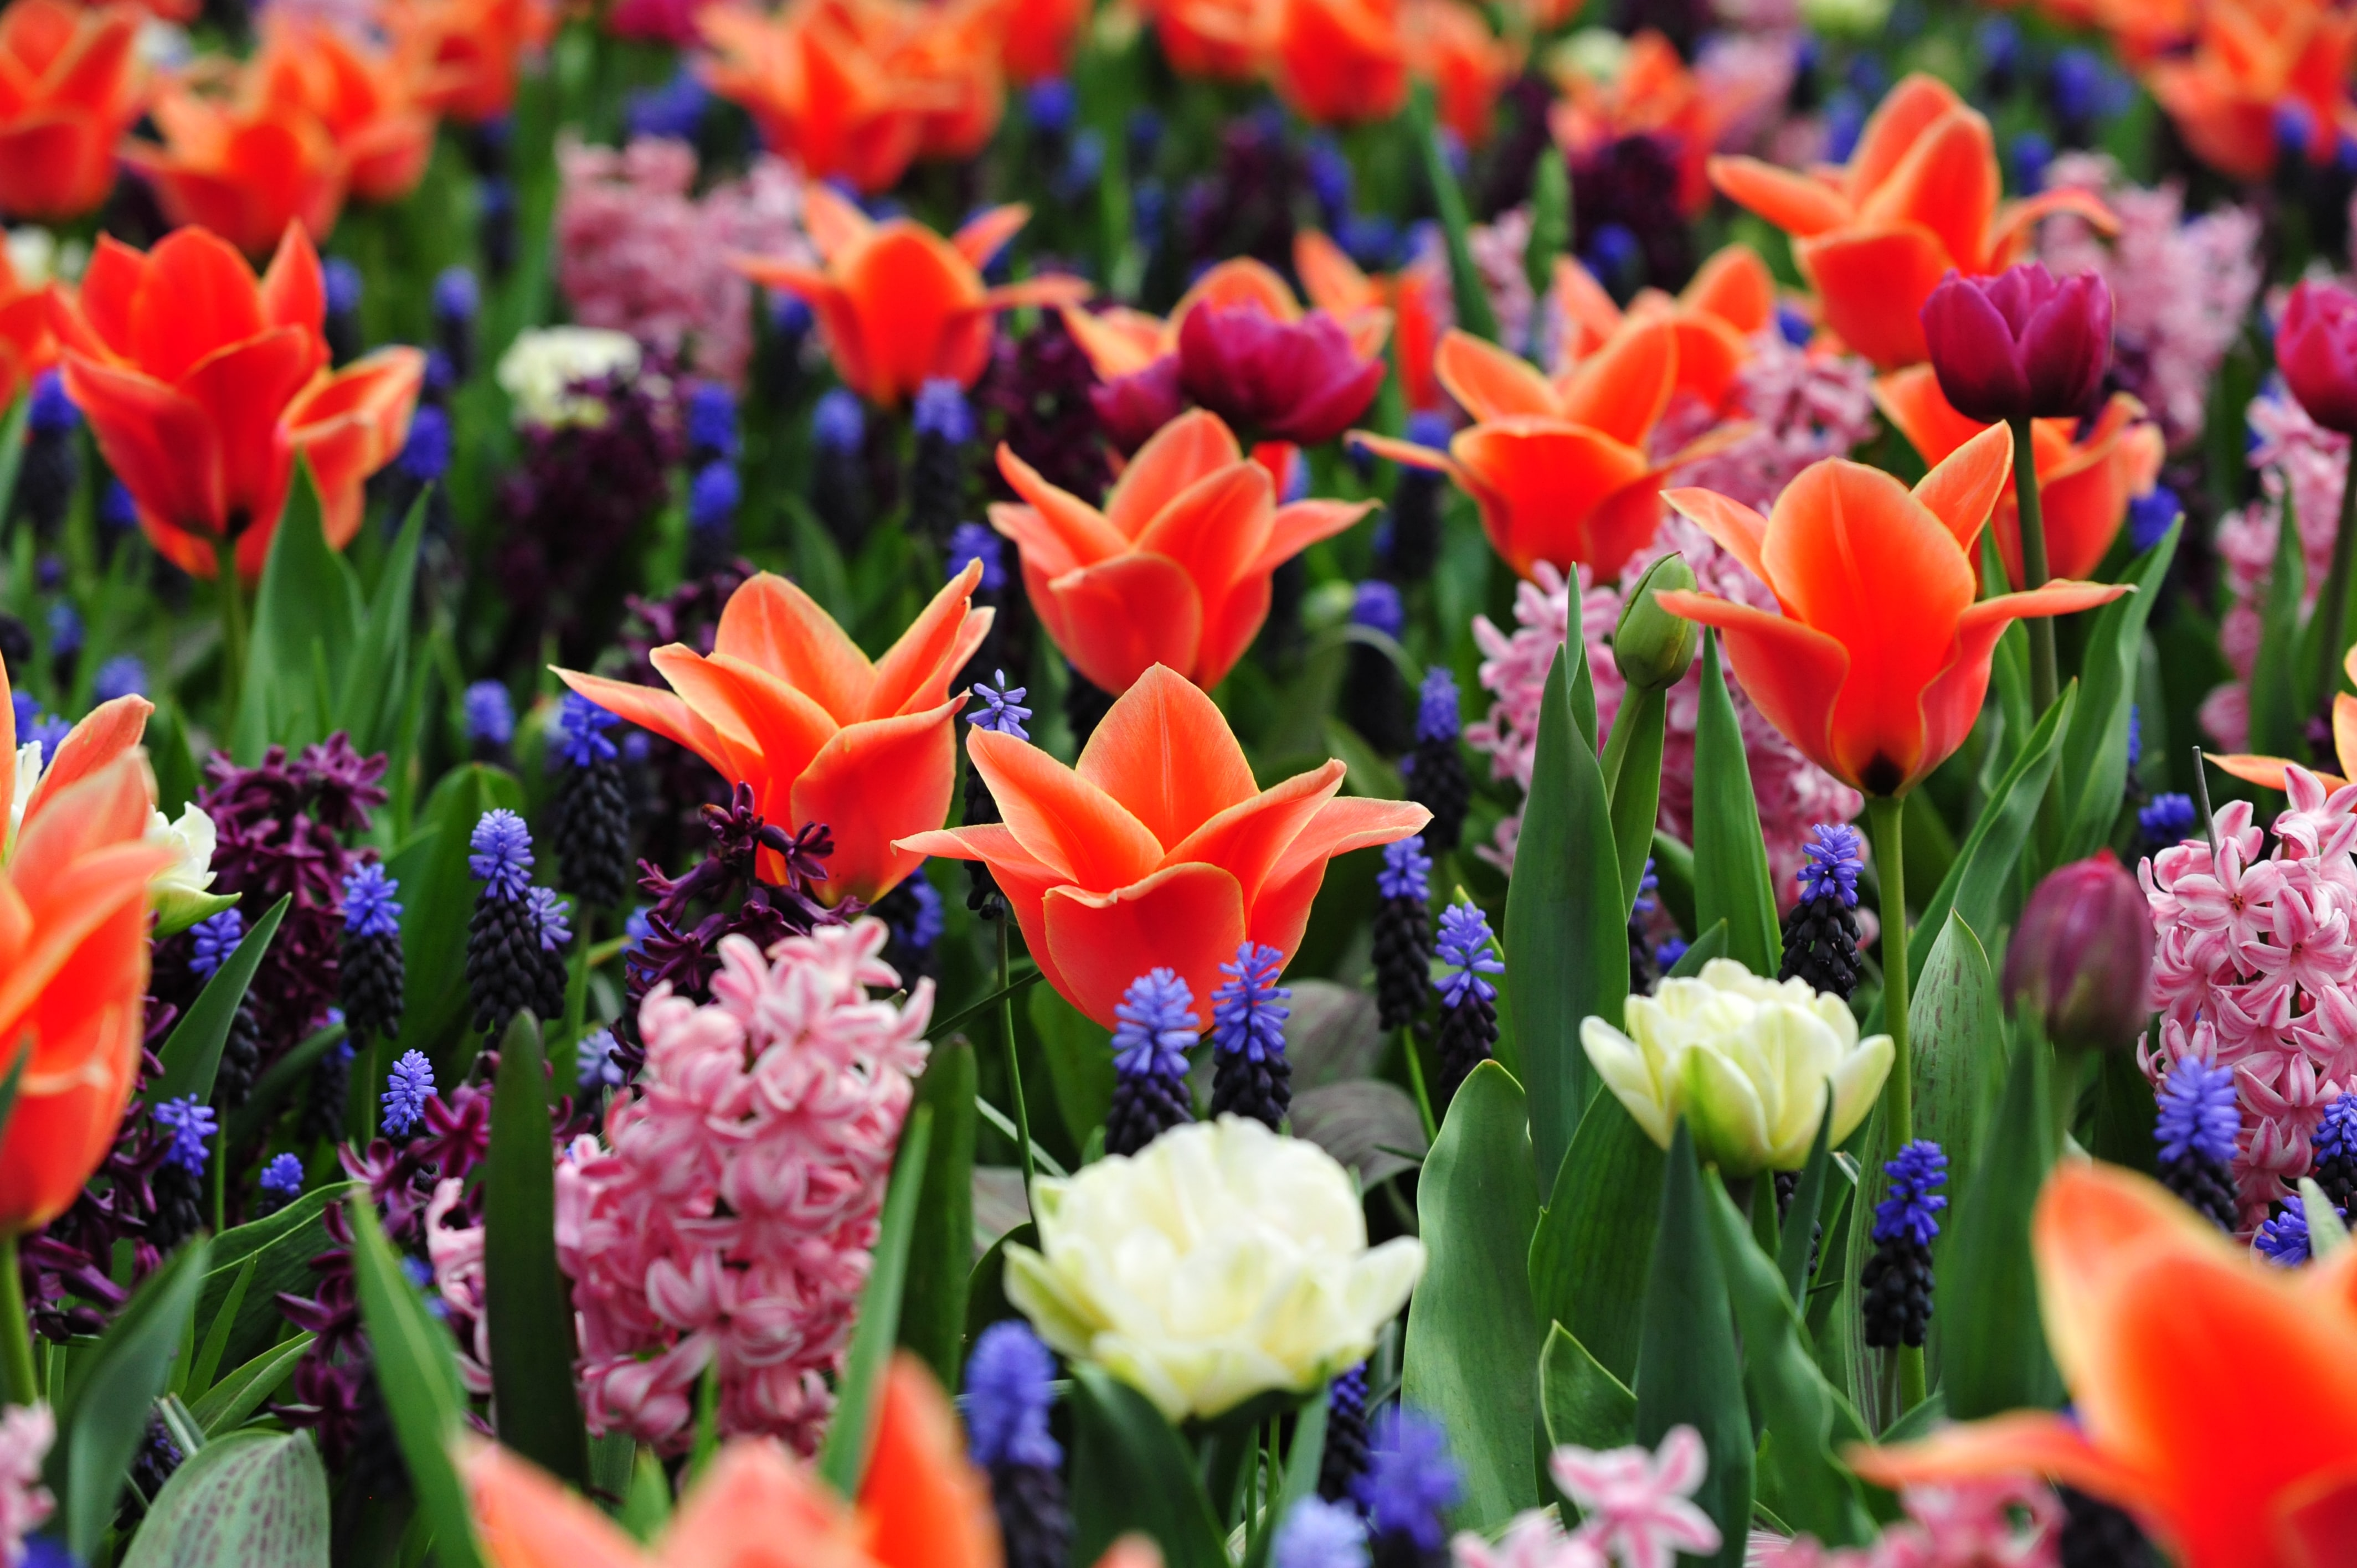 Stroll the Keukenhof, Things to do in Amsterdam in May